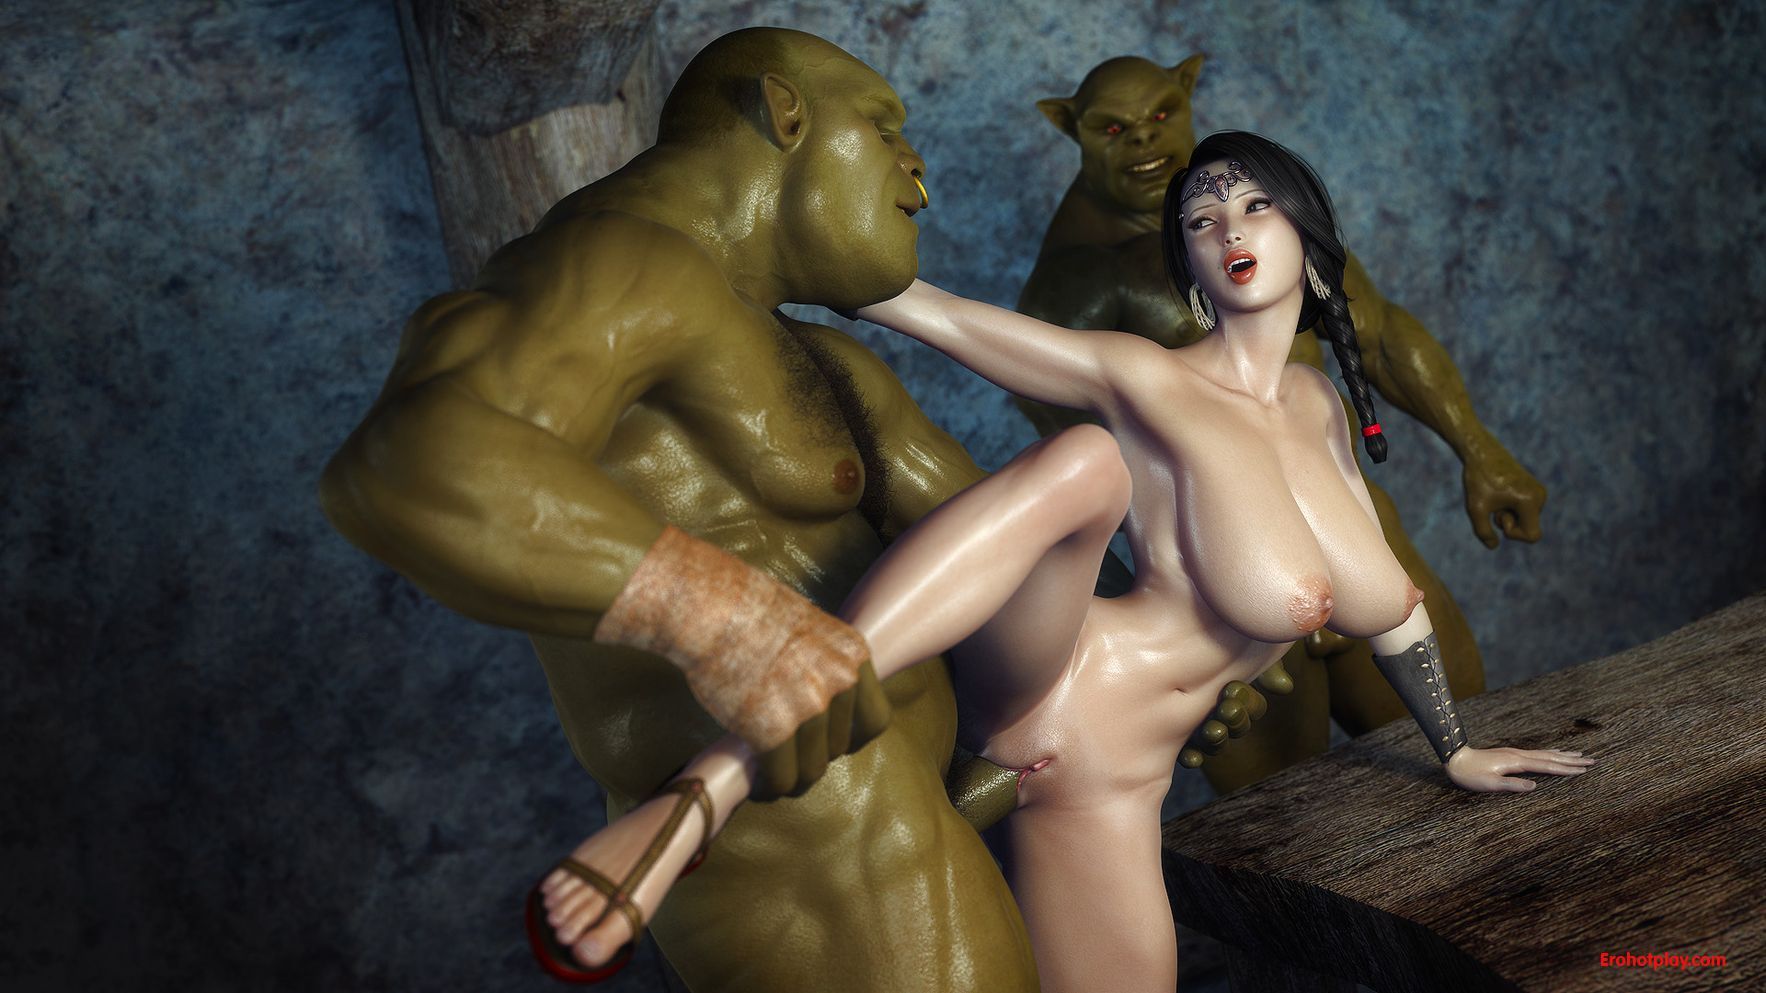 Xxx world warcraft in erotic tube